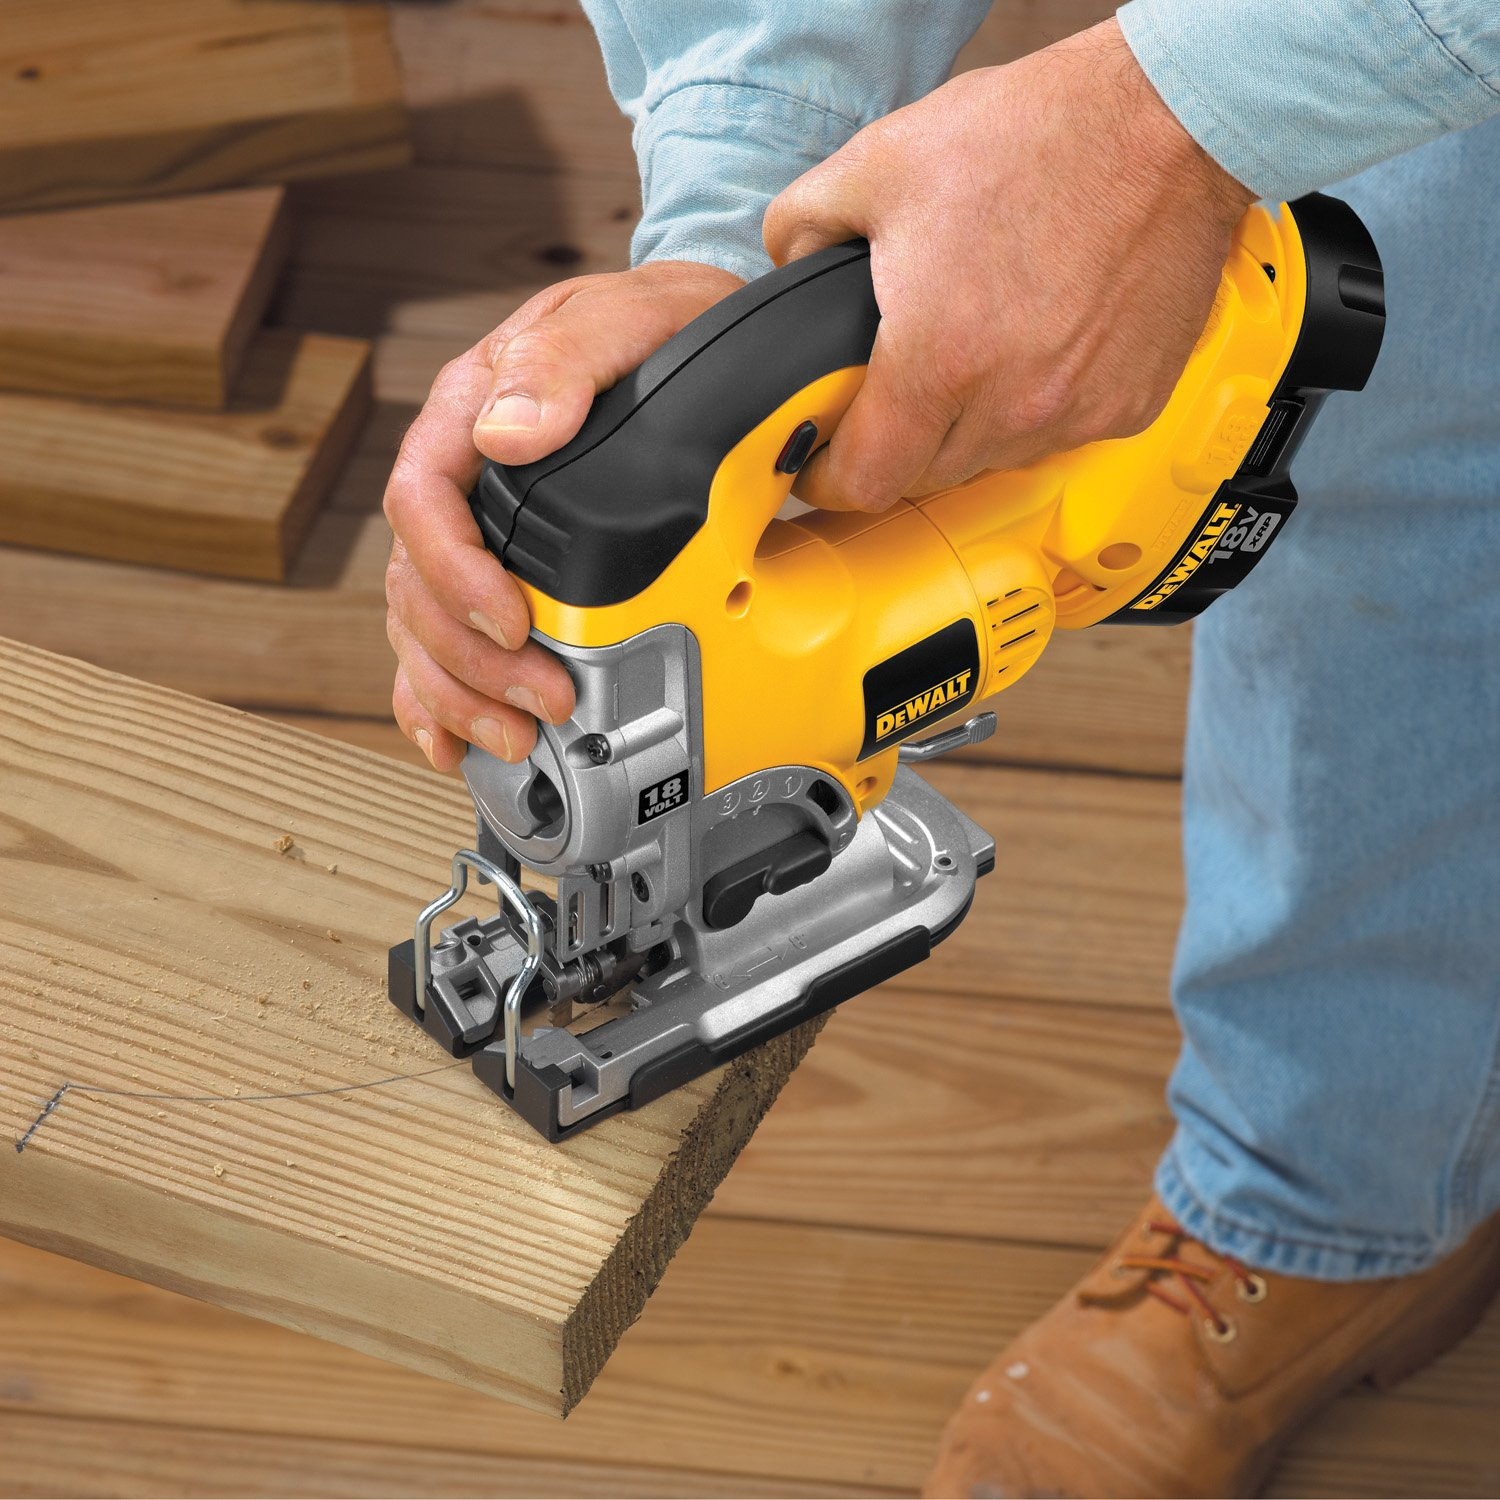 Dewalt dc330k heavy duty 18 volt ni cad cordless top handle jig saw dewalt dc330k heavy duty 18 volt ni cad cordless top handle jig saw kit power jig saws amazon keyboard keysfo Choice Image